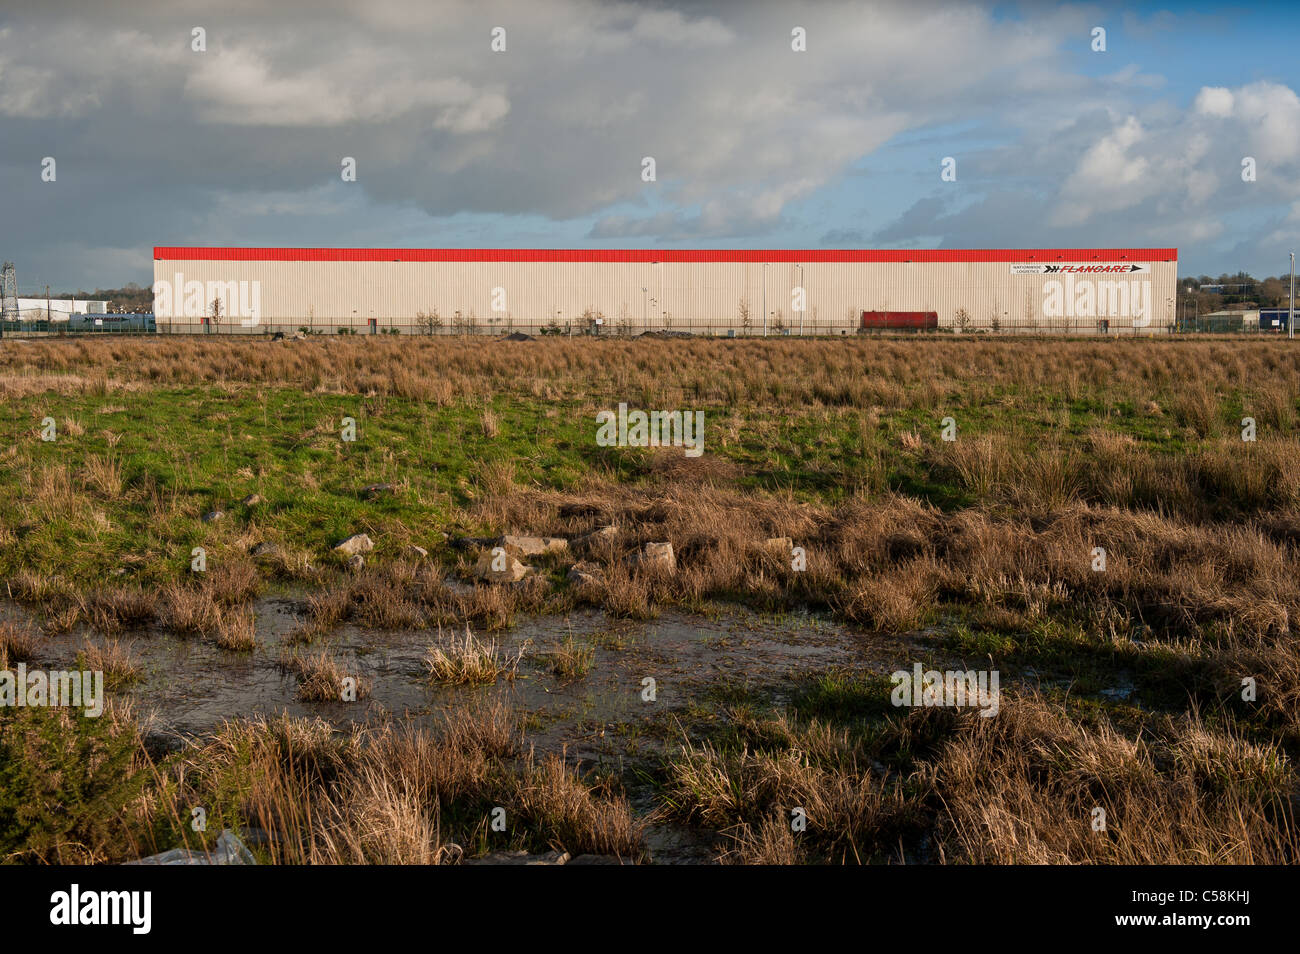 Flancare Logistics Warehouse outside Longord town, Co. Longford Ireland. - Stock Image